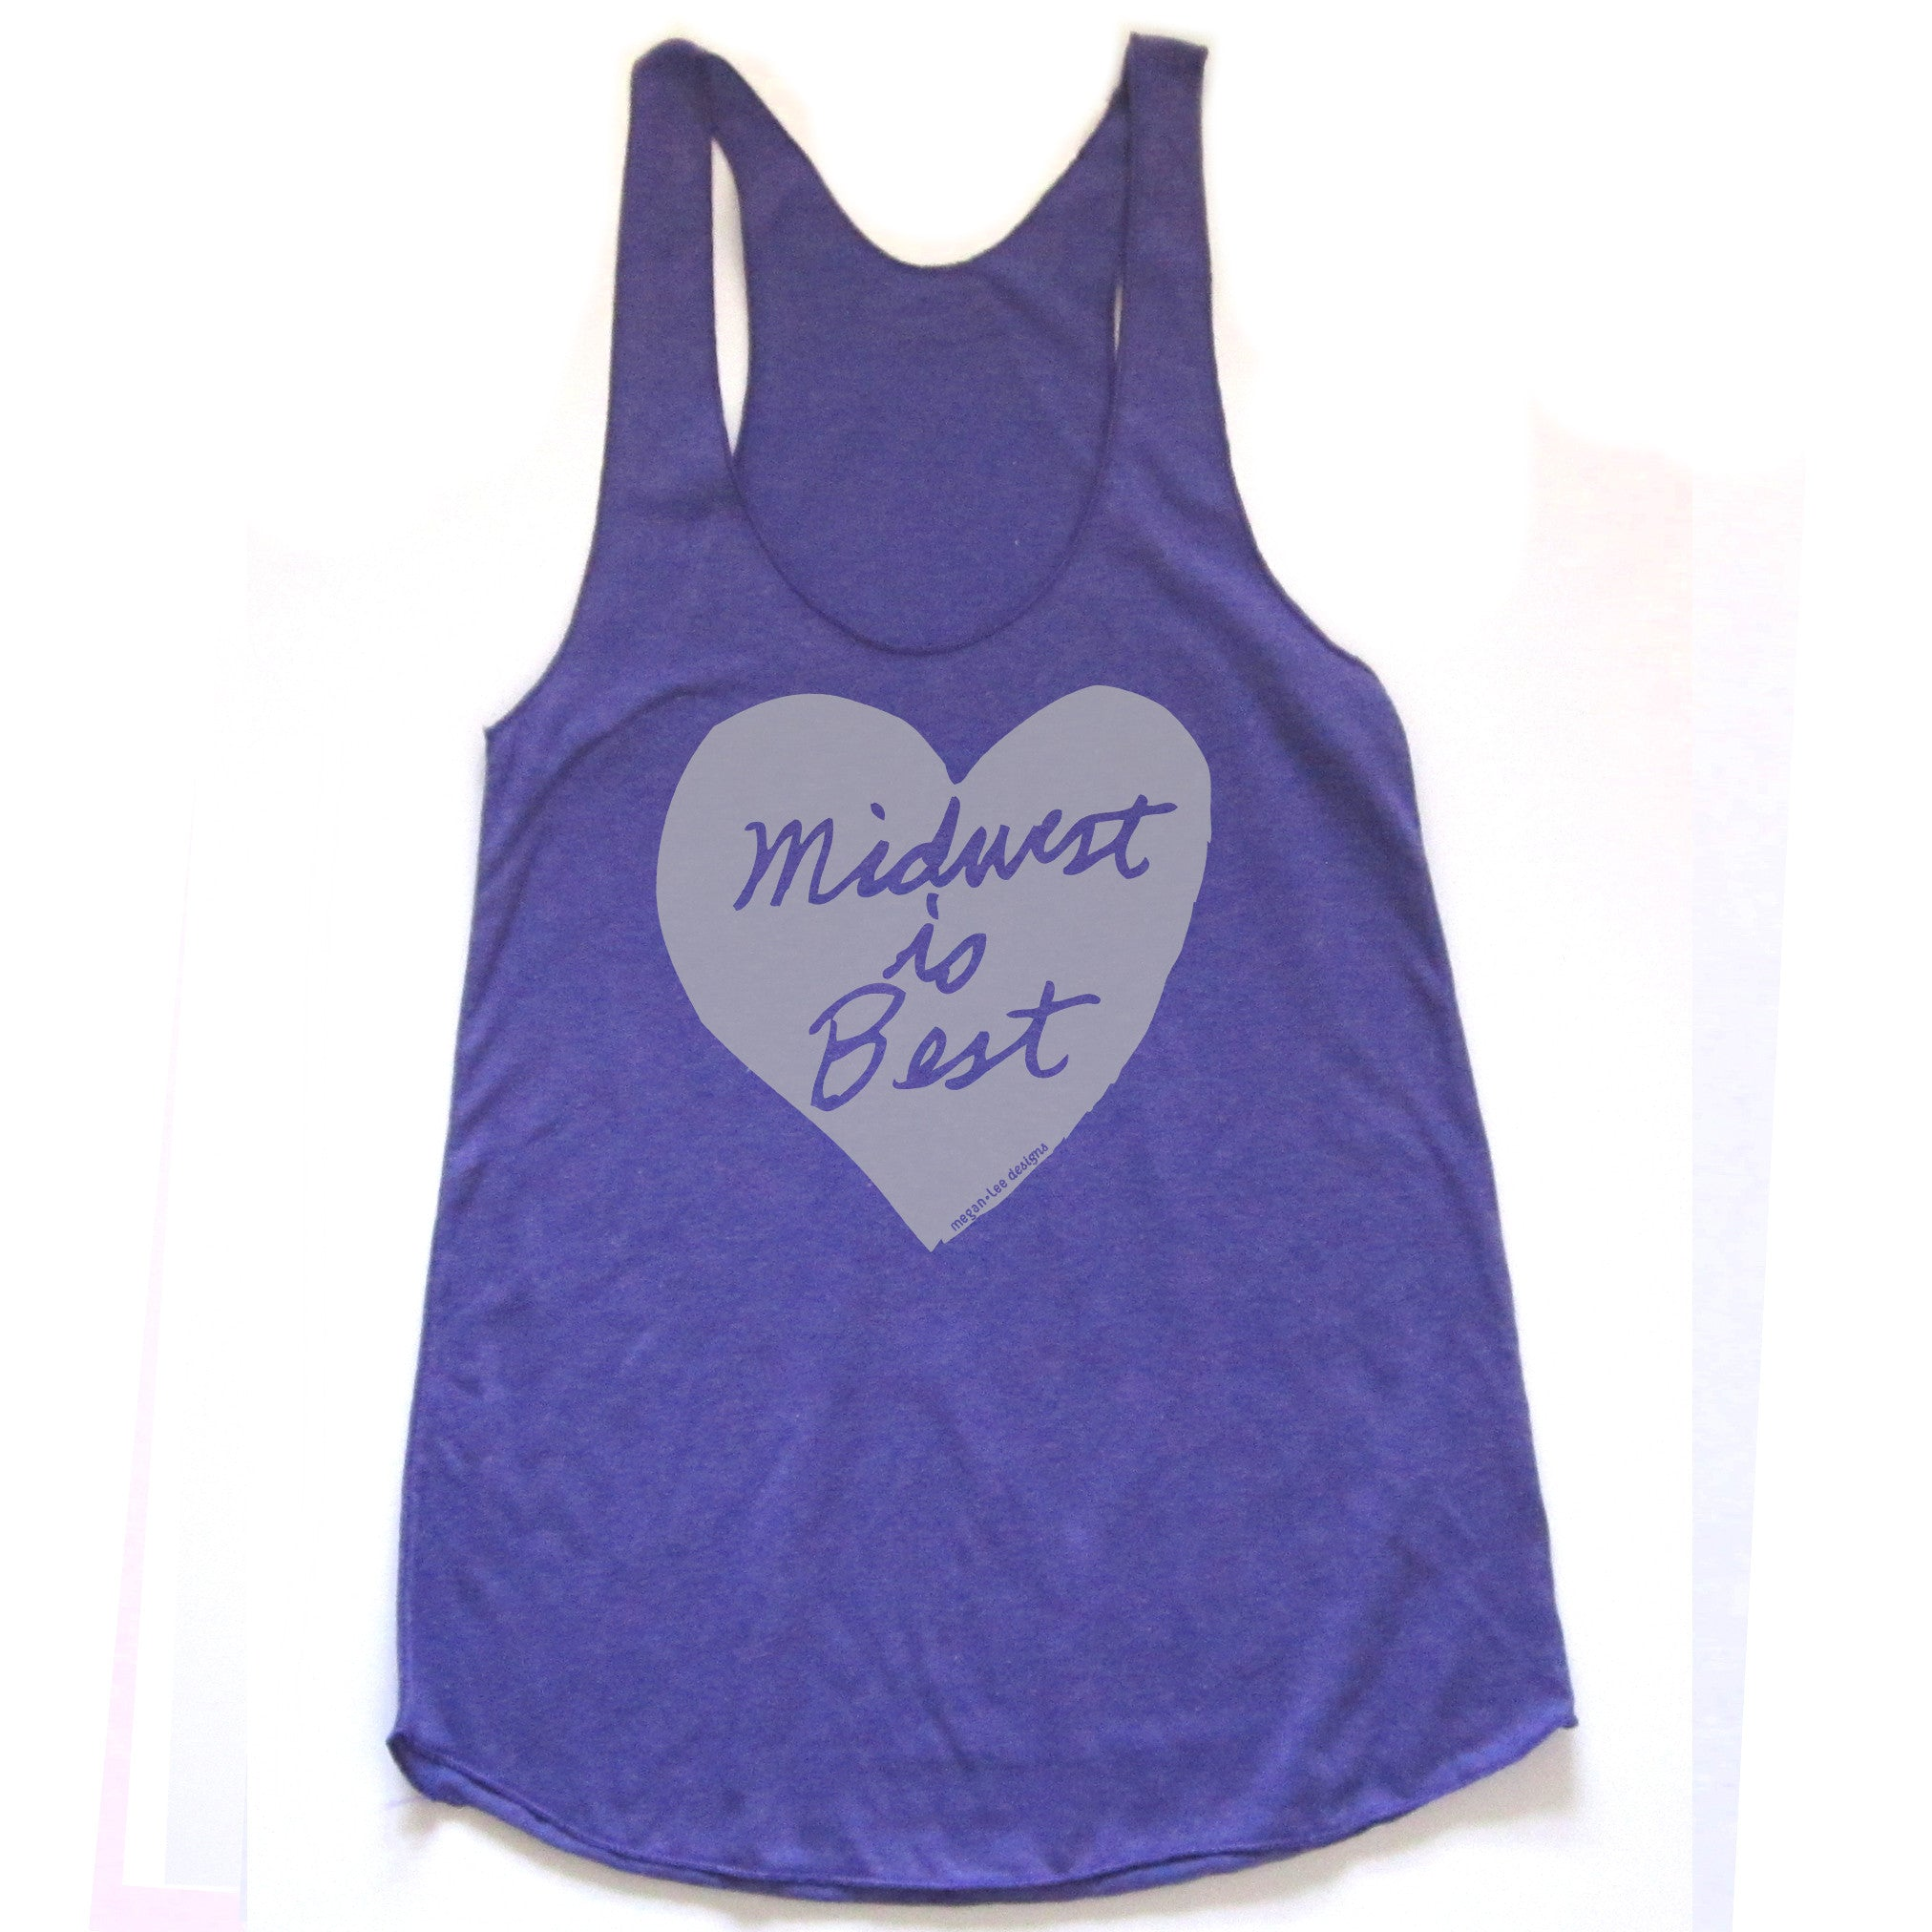 Midwest is Best : women racerback tri-blend tank, Women's Apparel - Megan Lee Designs